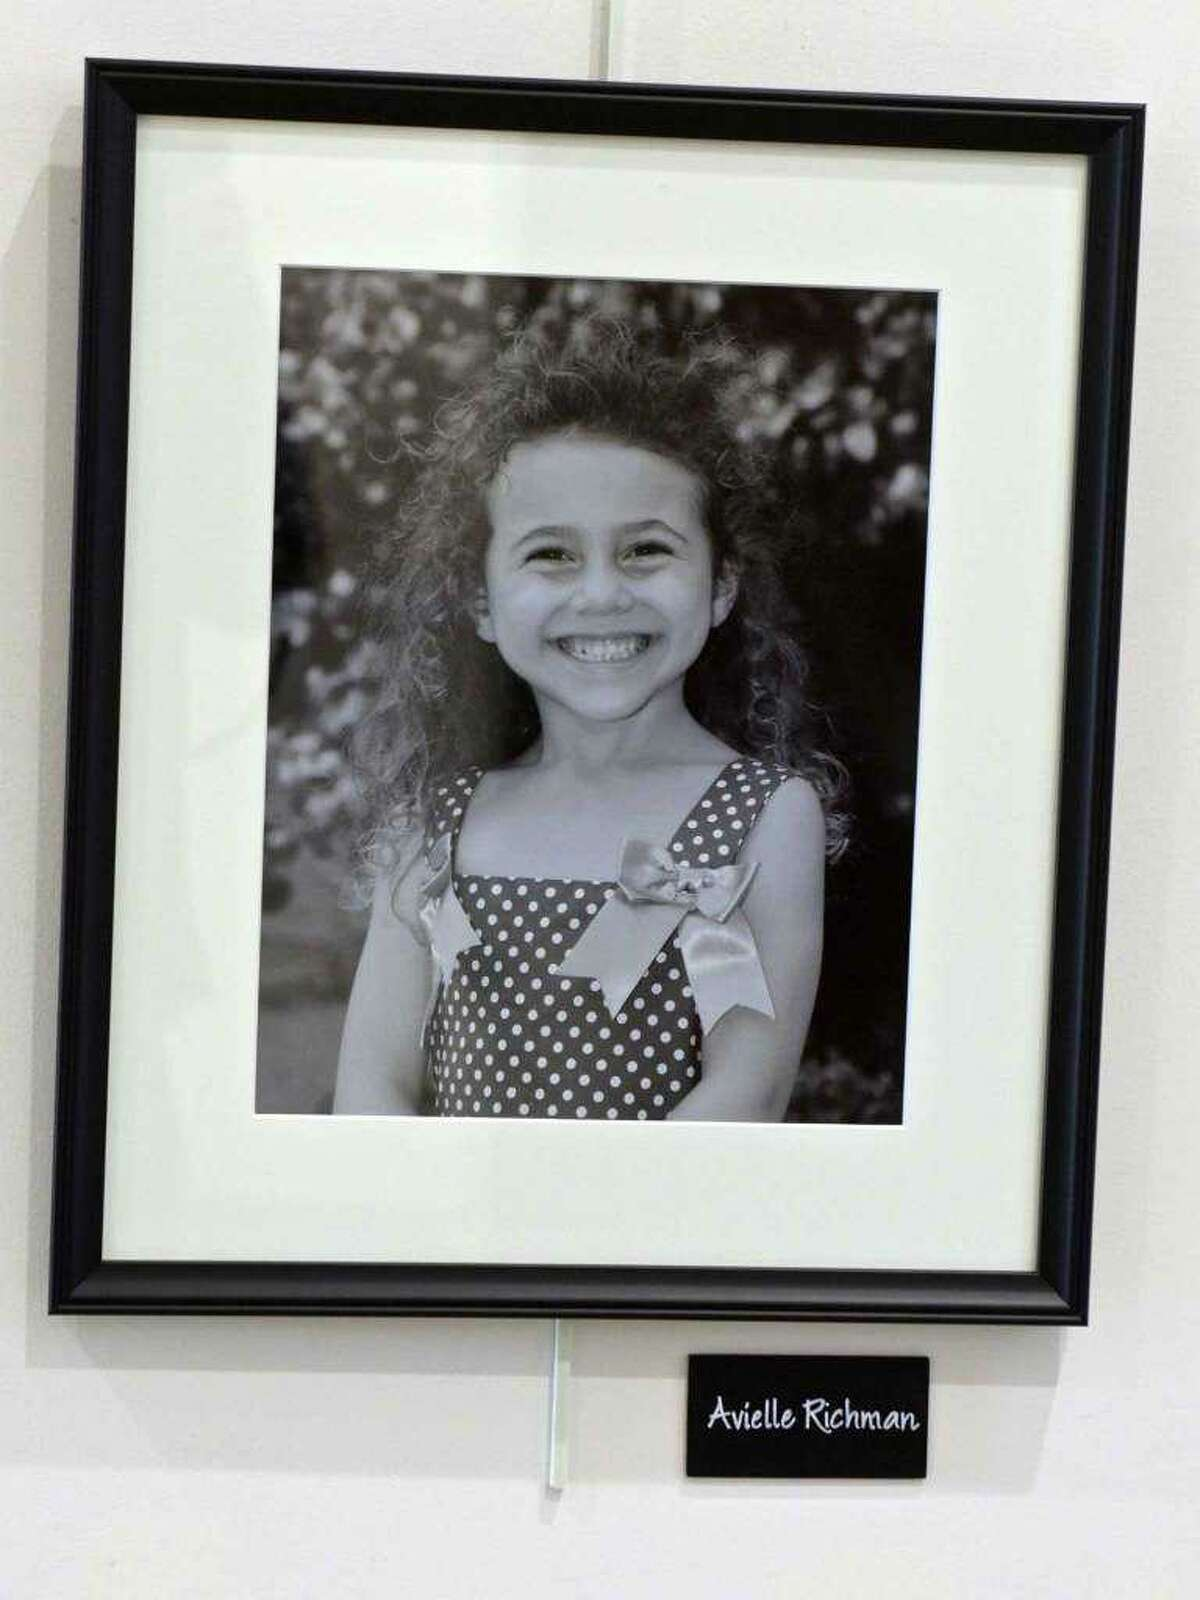 A photograph of Avielle Richman, one of the victims of the Sandy Hook Elementary School shooting, in a gallery in the Newtown Municipal Center on Wednesday, December 13, 2017.